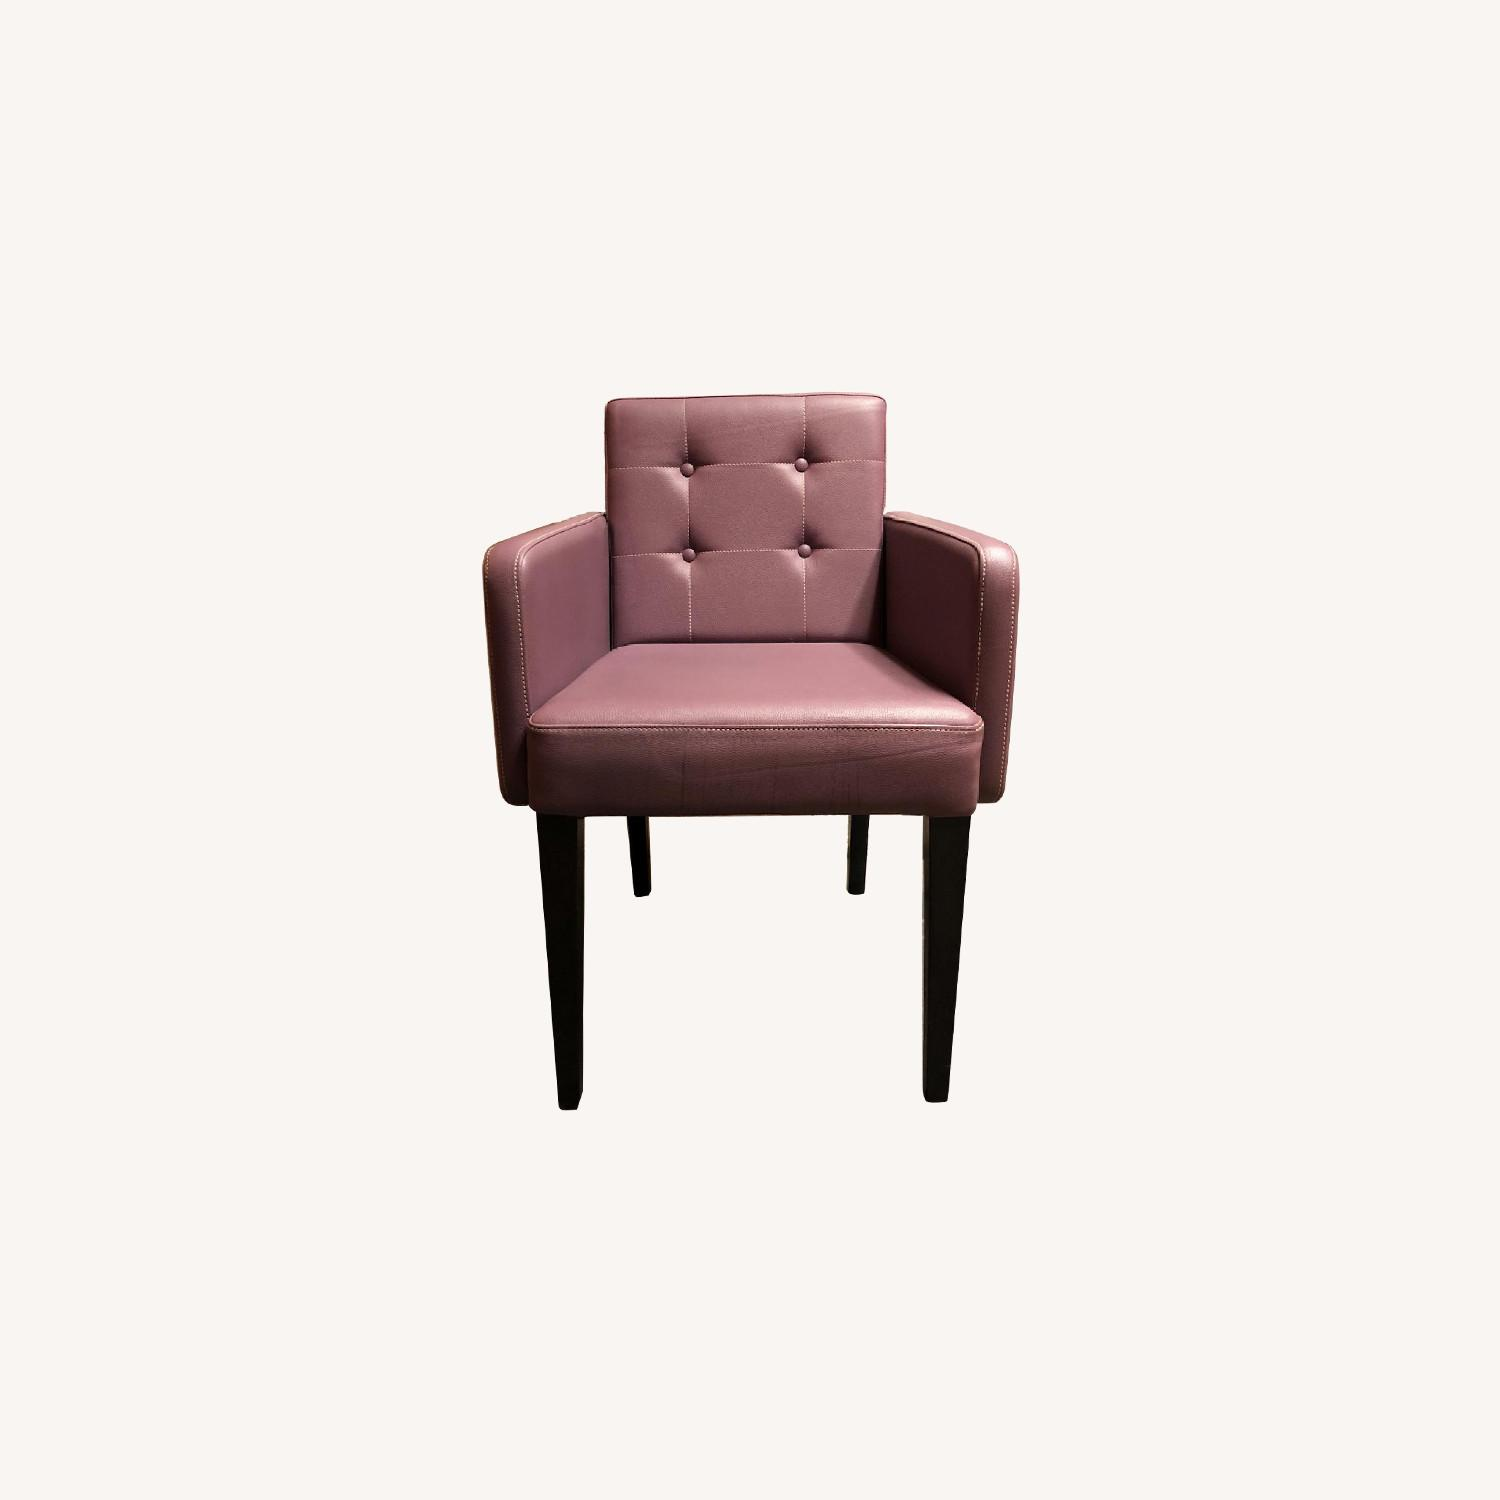 Coulboy & Co Custom Faux Leather Dining Chairs - image-0